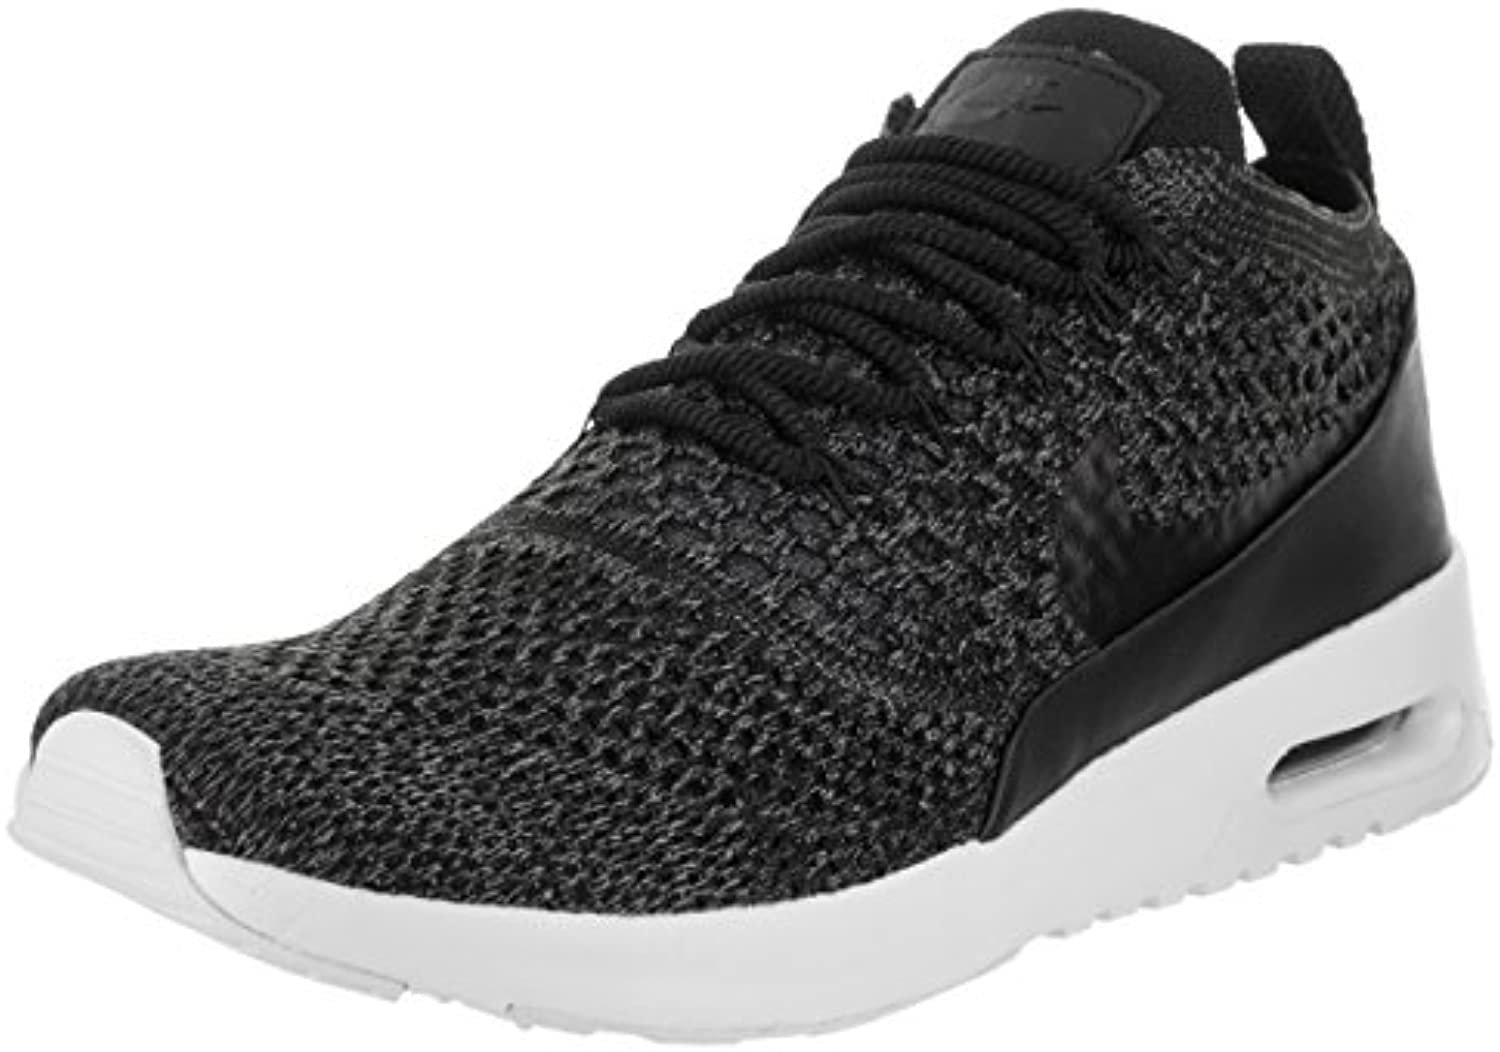 sneakers for cheap b1364 0dca2 Homme Femme NIKE 881175 007 FemmeB079H4QYHMParent Chaque article article  article d ded07f